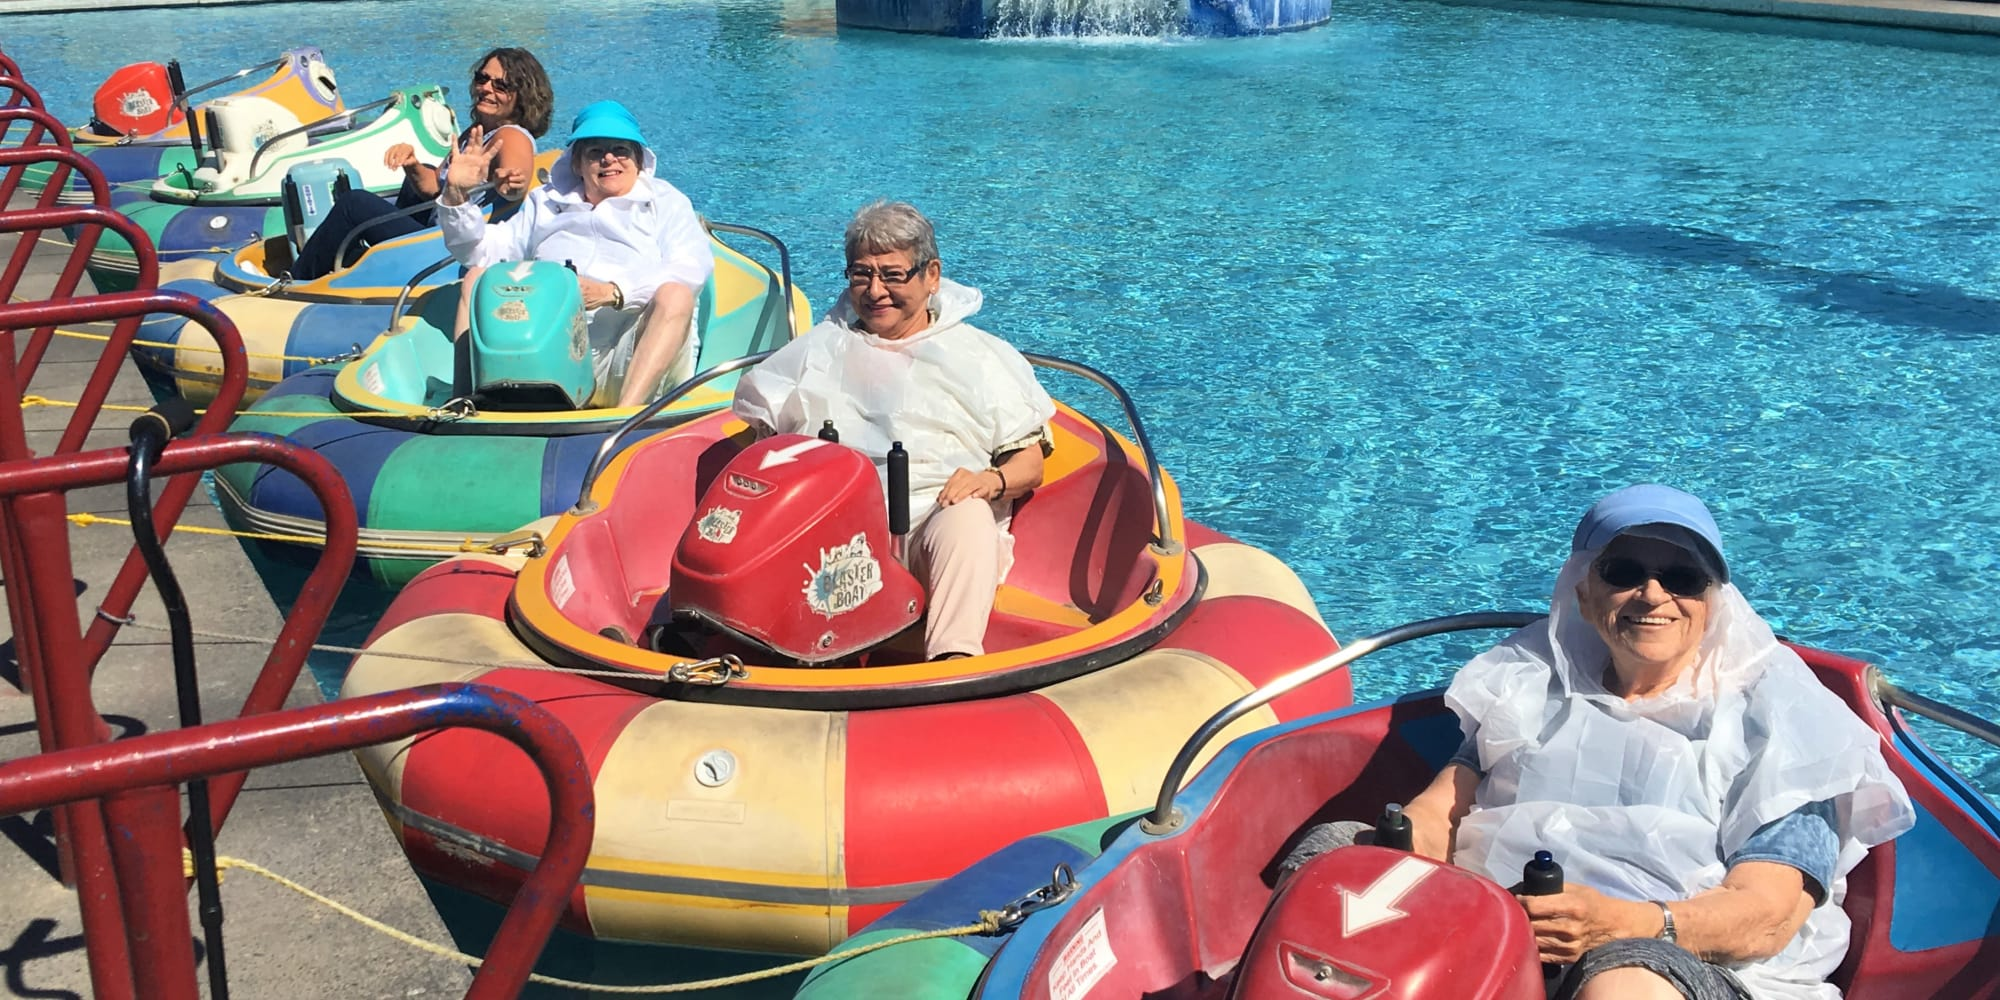 Residents from Ashwood Meadows Gracious Retirement Living in Johns Creek, Georgia, on a water ride